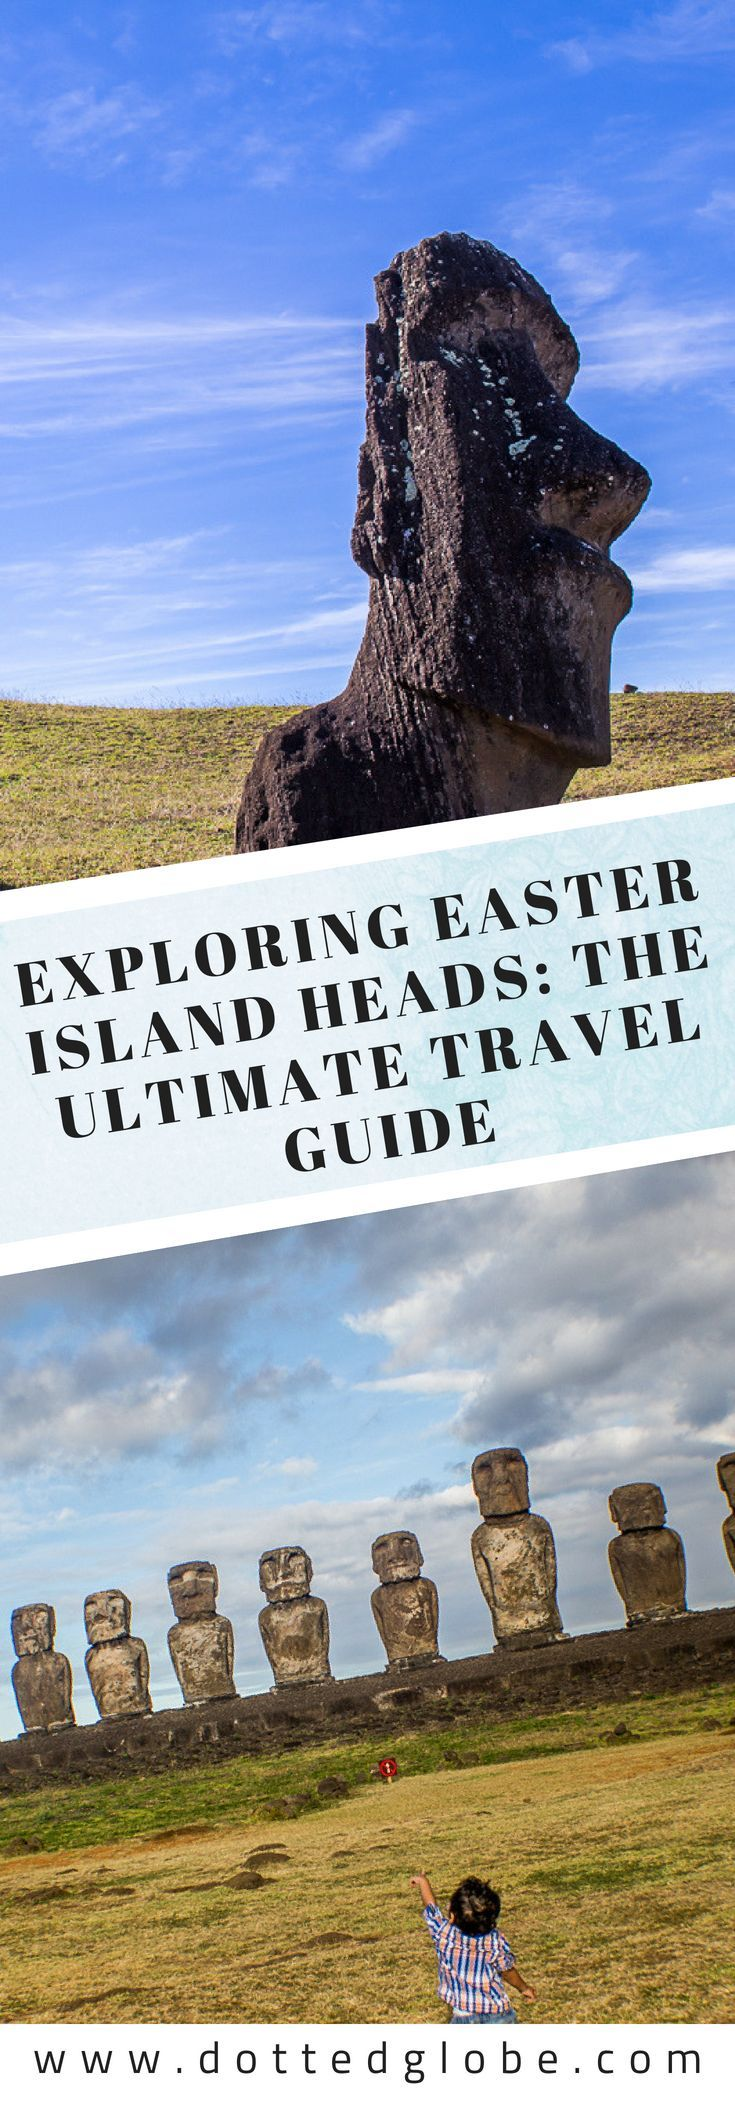 Exploring Easter Island Heads: The Ultimate Travel Guide